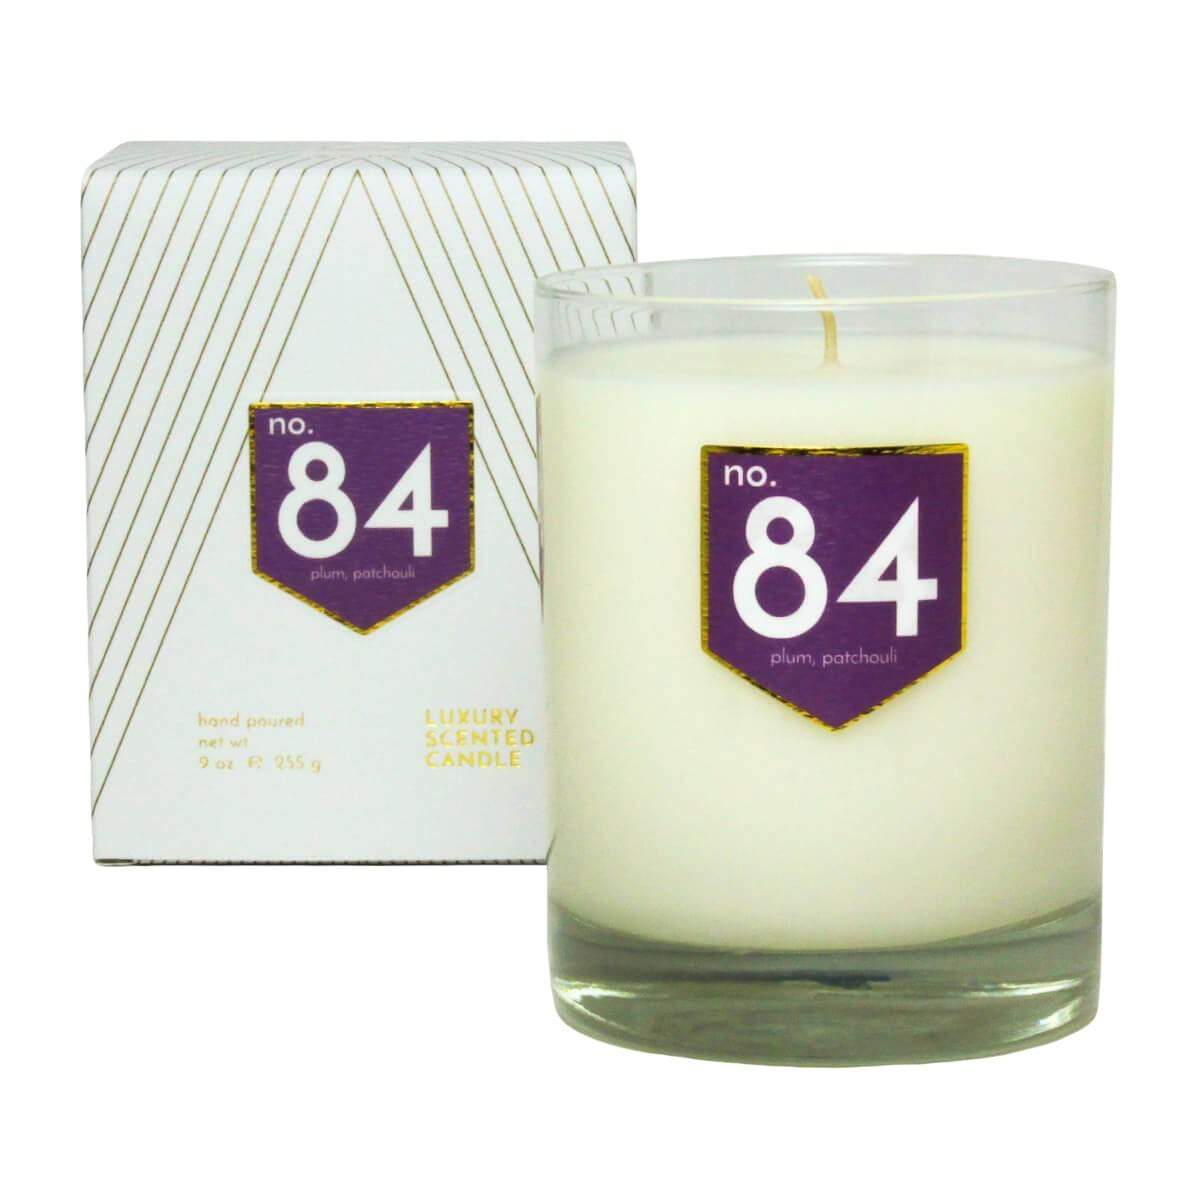 ACDC Candle Co Candles & Diffusers No. 84 Plum Patchouli Scented Soy Candle